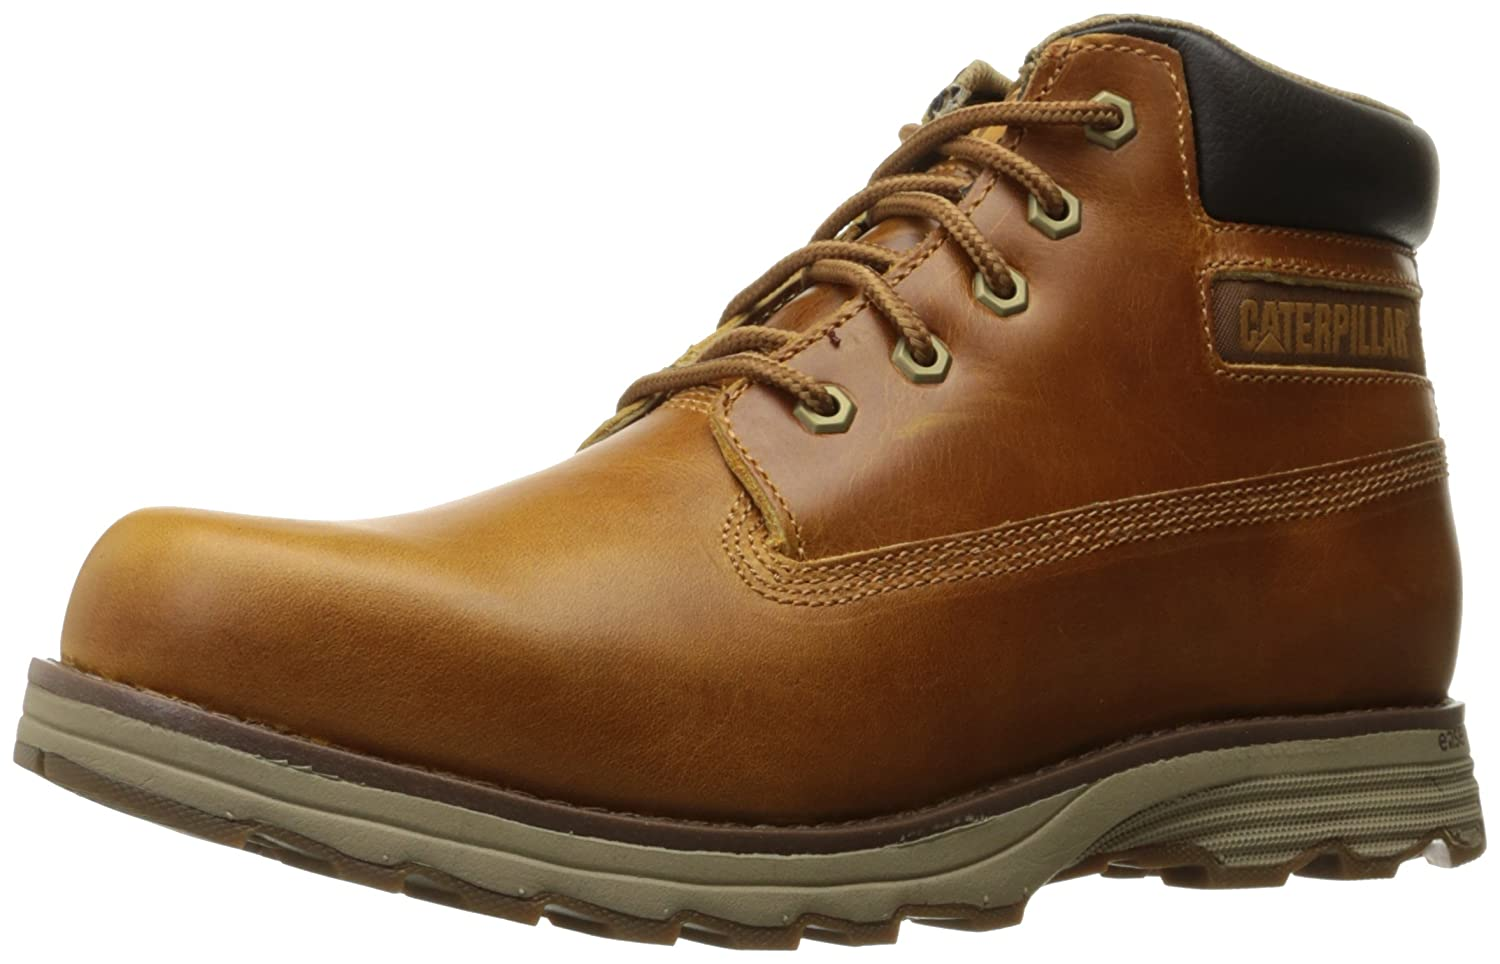 Image of Backpacking Boots Caterpillar Men's Founder Backpacking Boot